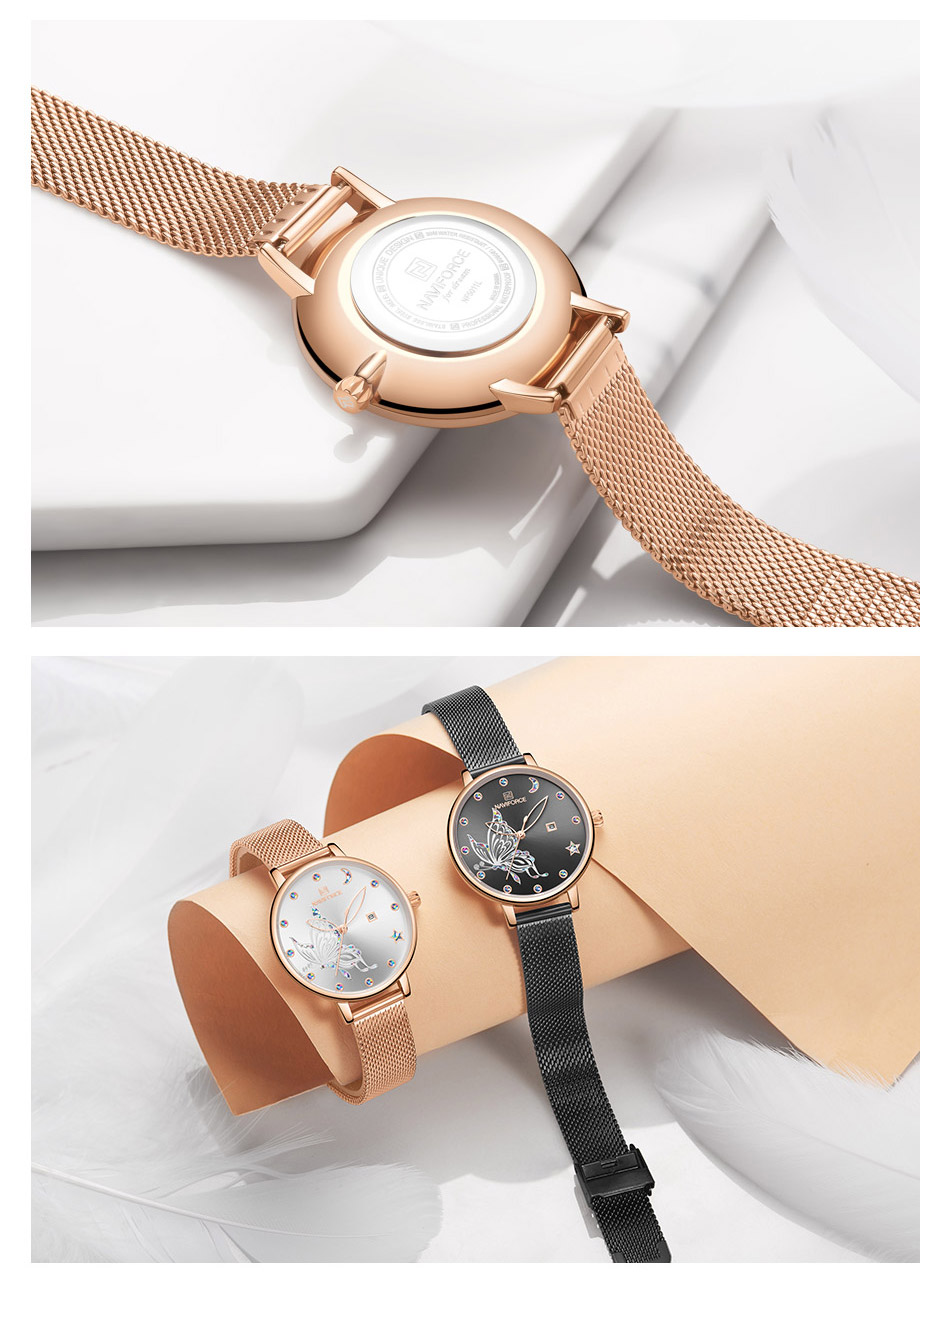 H59737f5191e345f19c1ba7f05141aedcu - NAVIFORCE Luxury Brand Watch Women Fashion Dress Quartz Ladies Mesh Stainless Steel 3ATM Waterproof Casual Watches for Girl